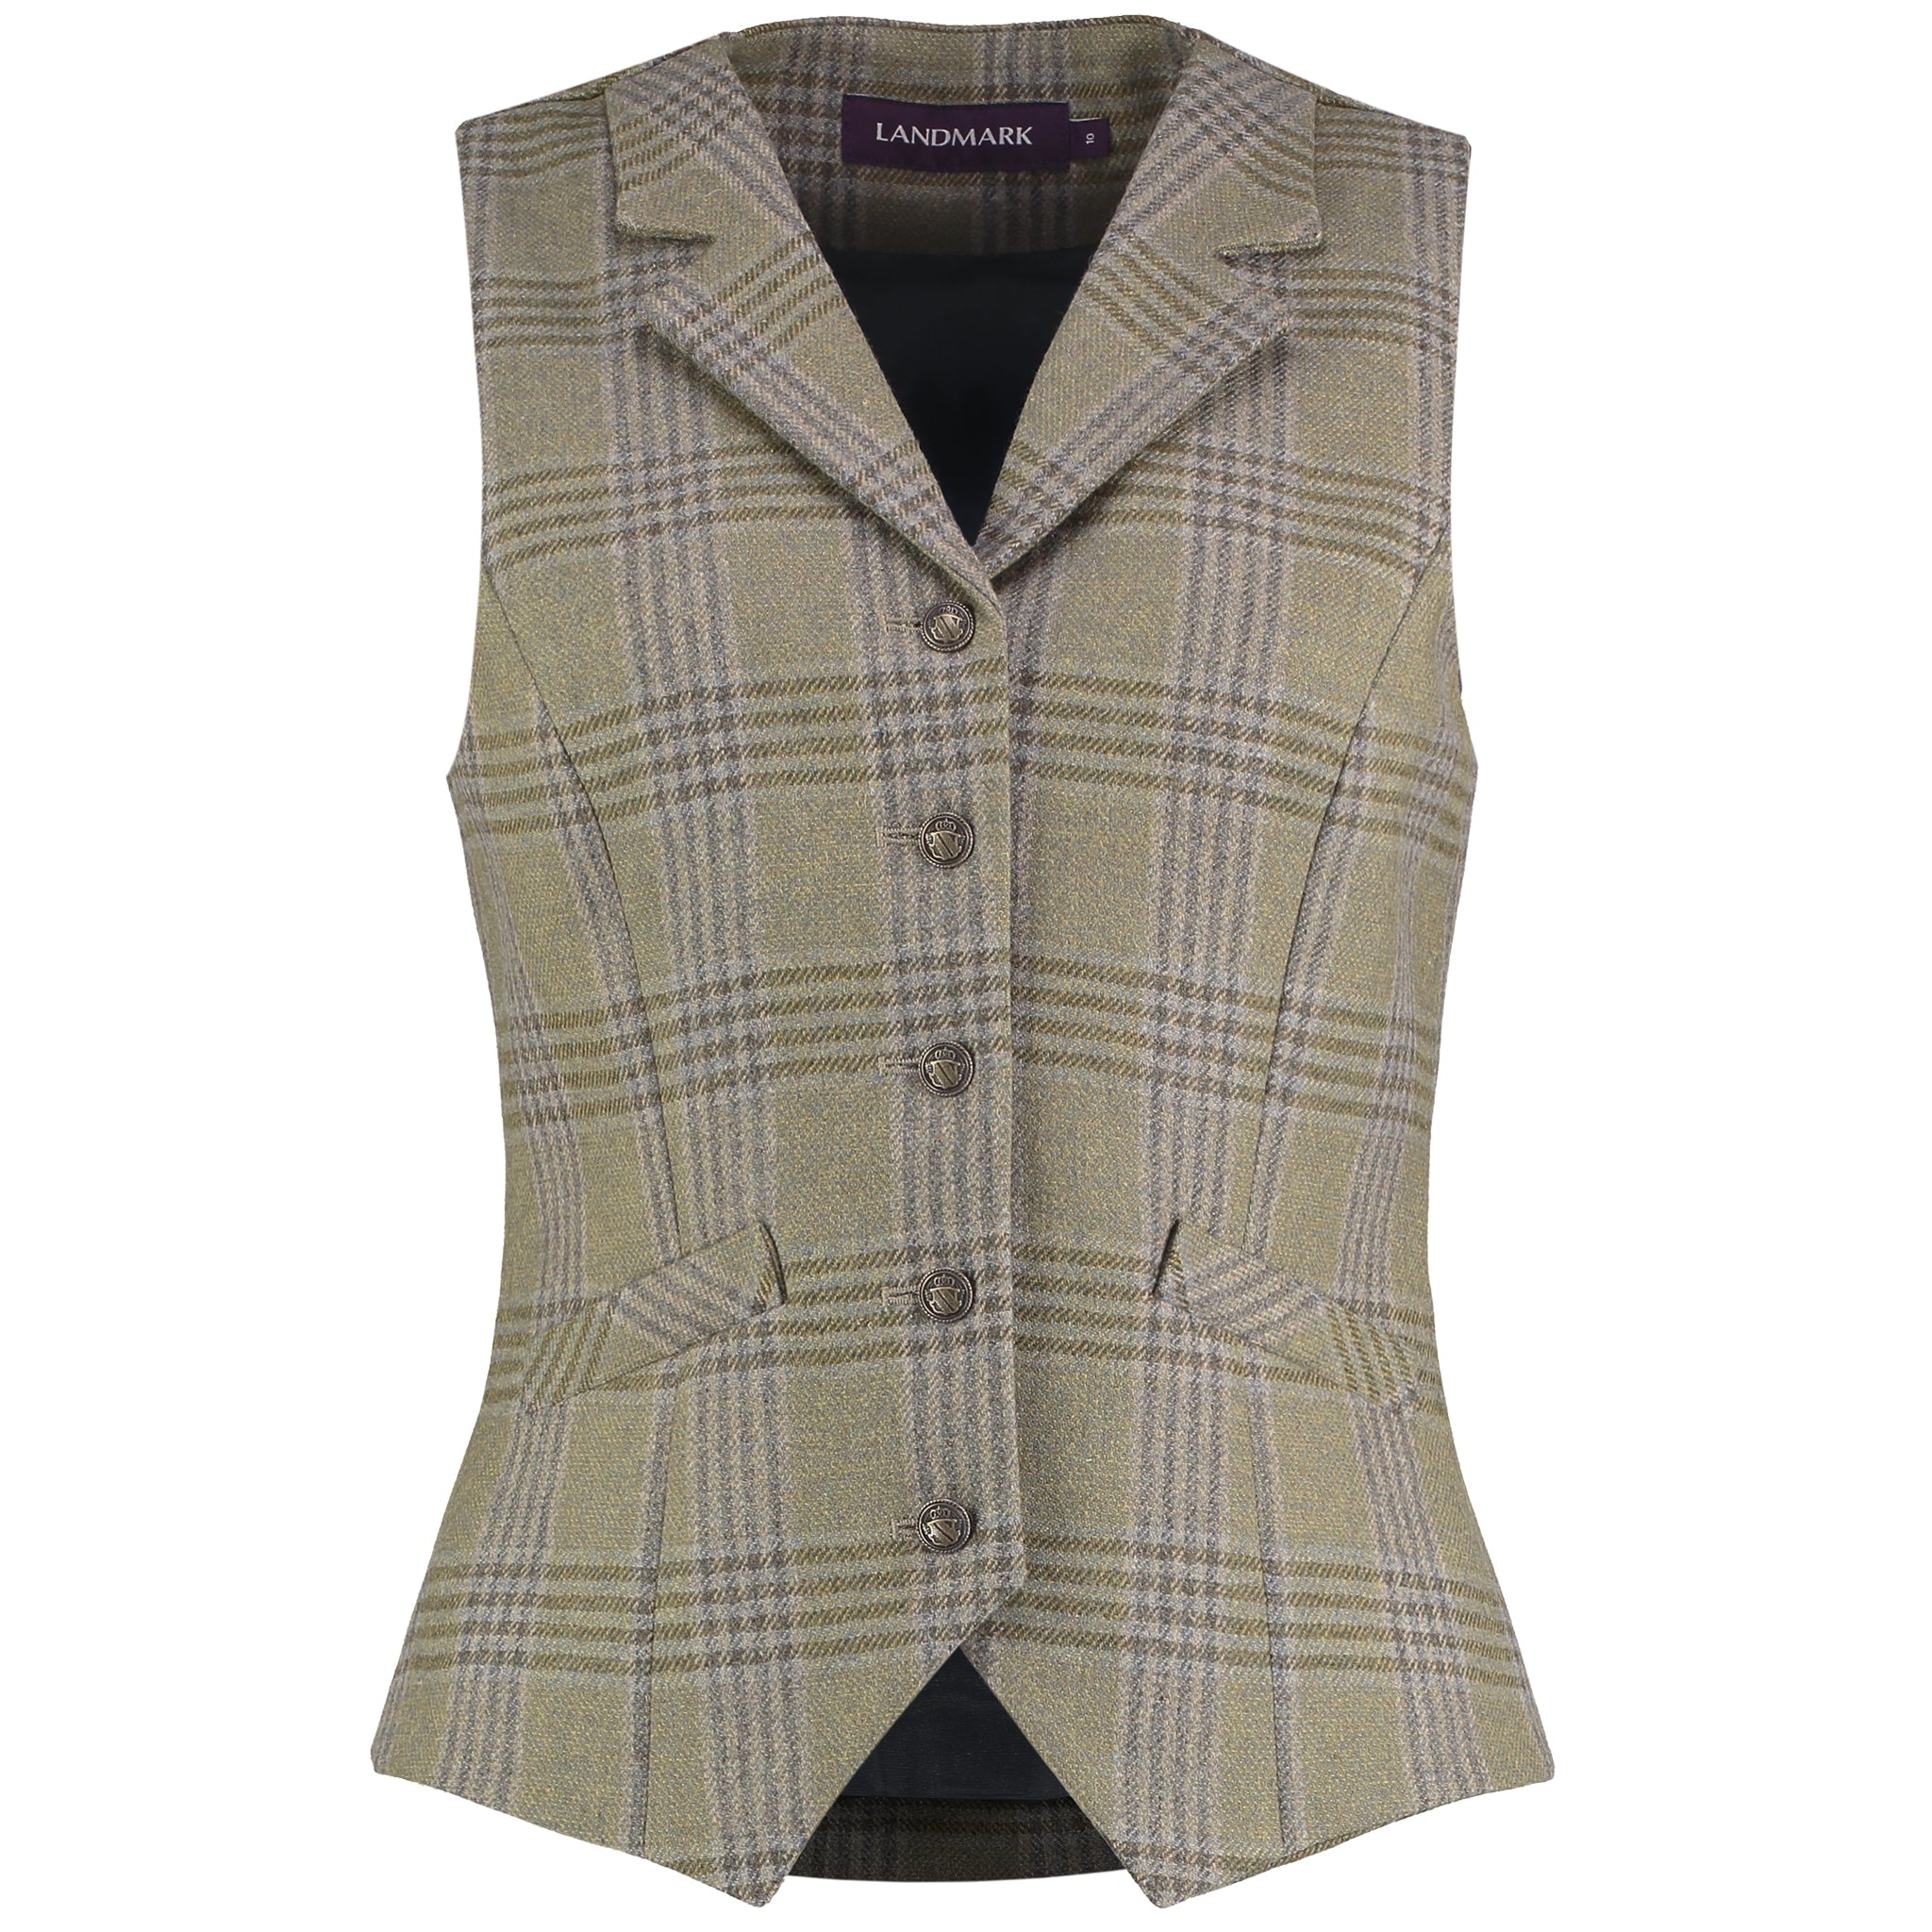 Landmark Stanton Tweed Waistcoat for Ladies in Blue Steel Tweed